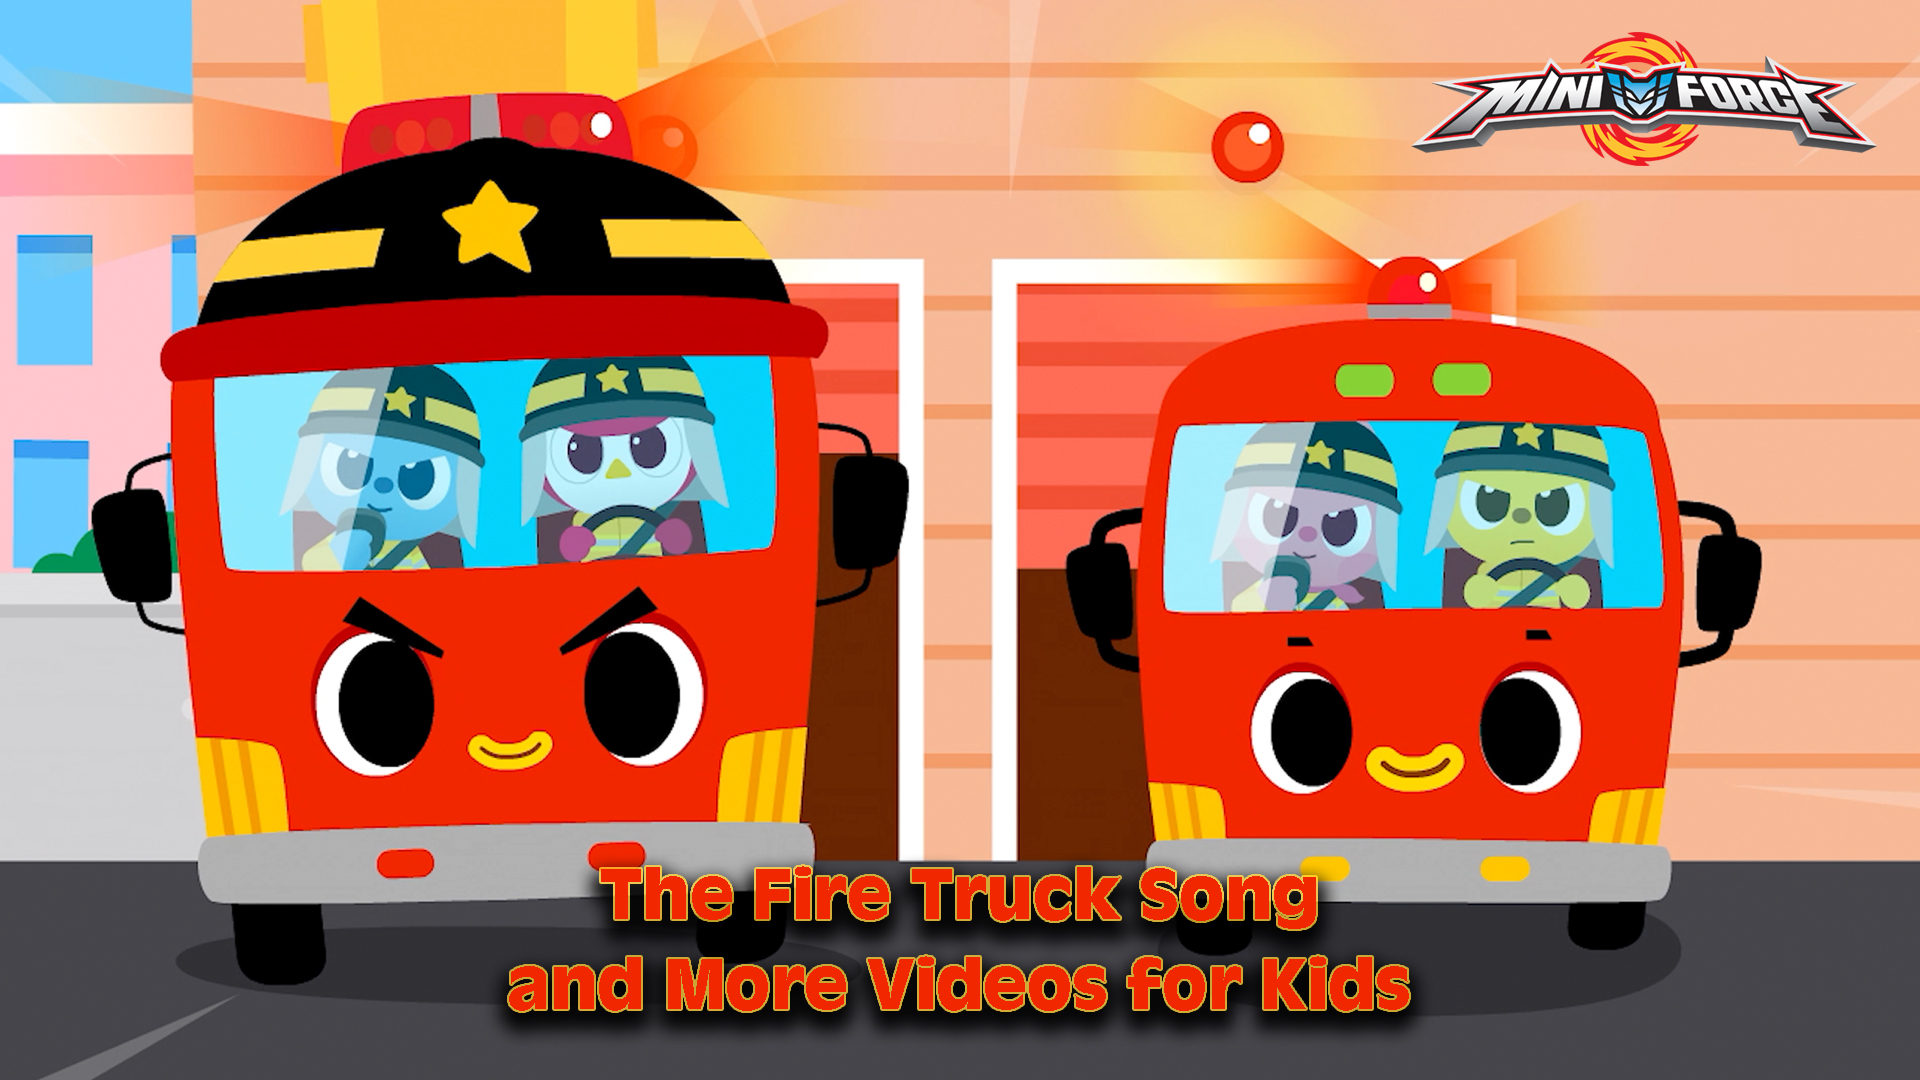 Miniforce - The Fire Truck Song and More Videos for Kids